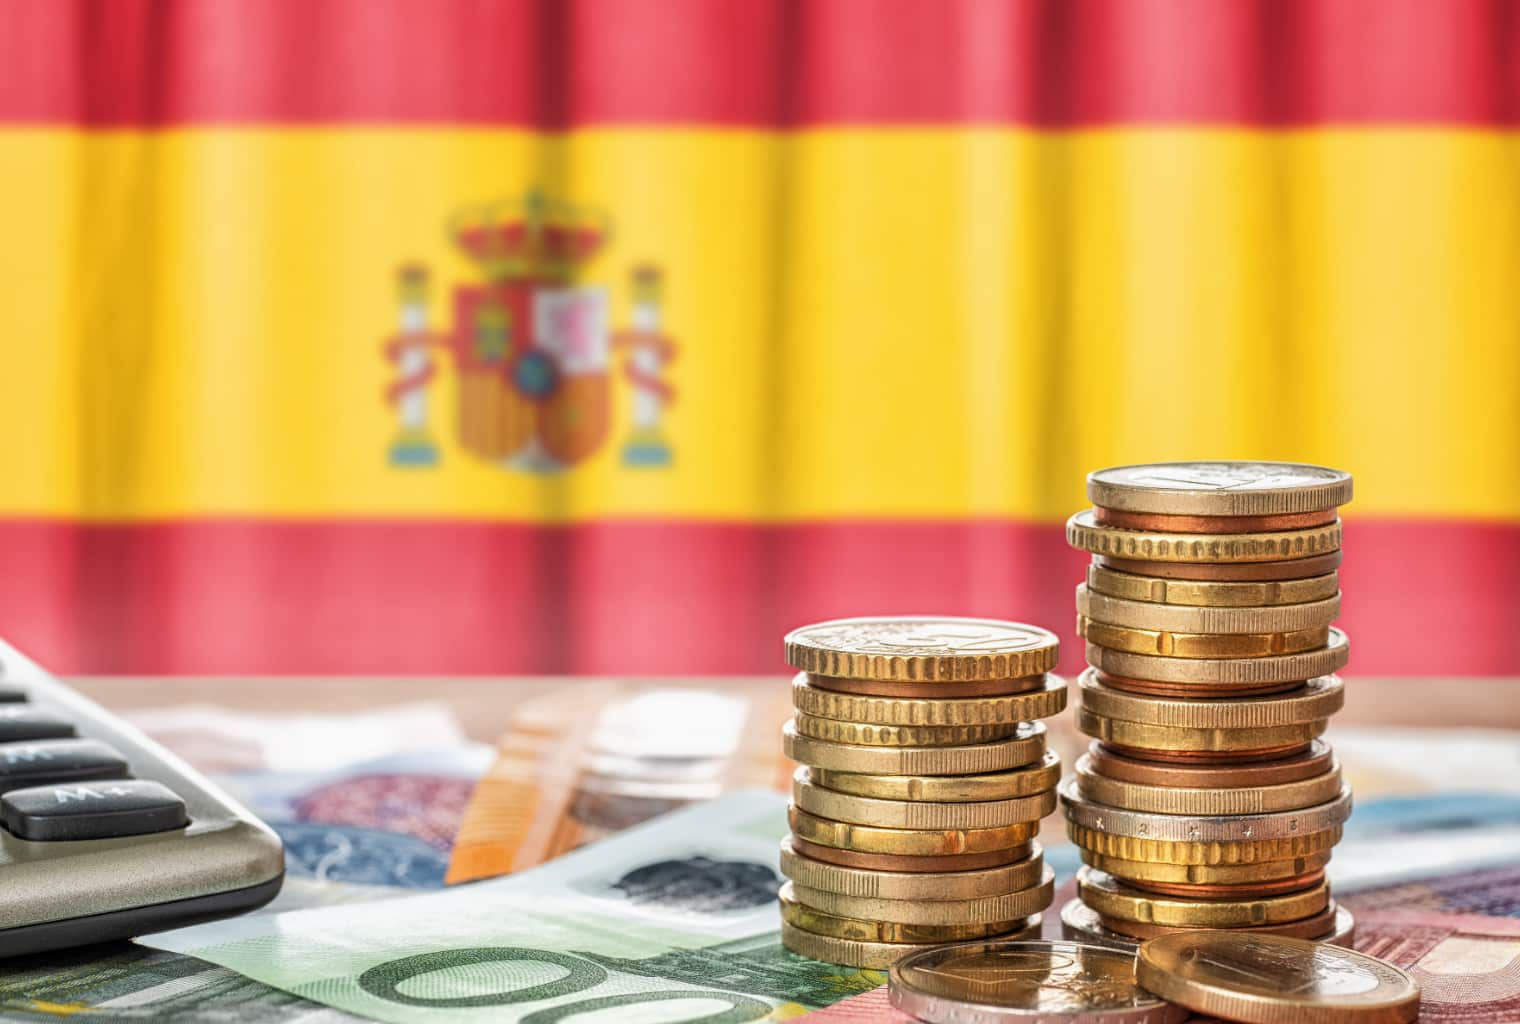 Spain forces crypto accounts to be disclosed